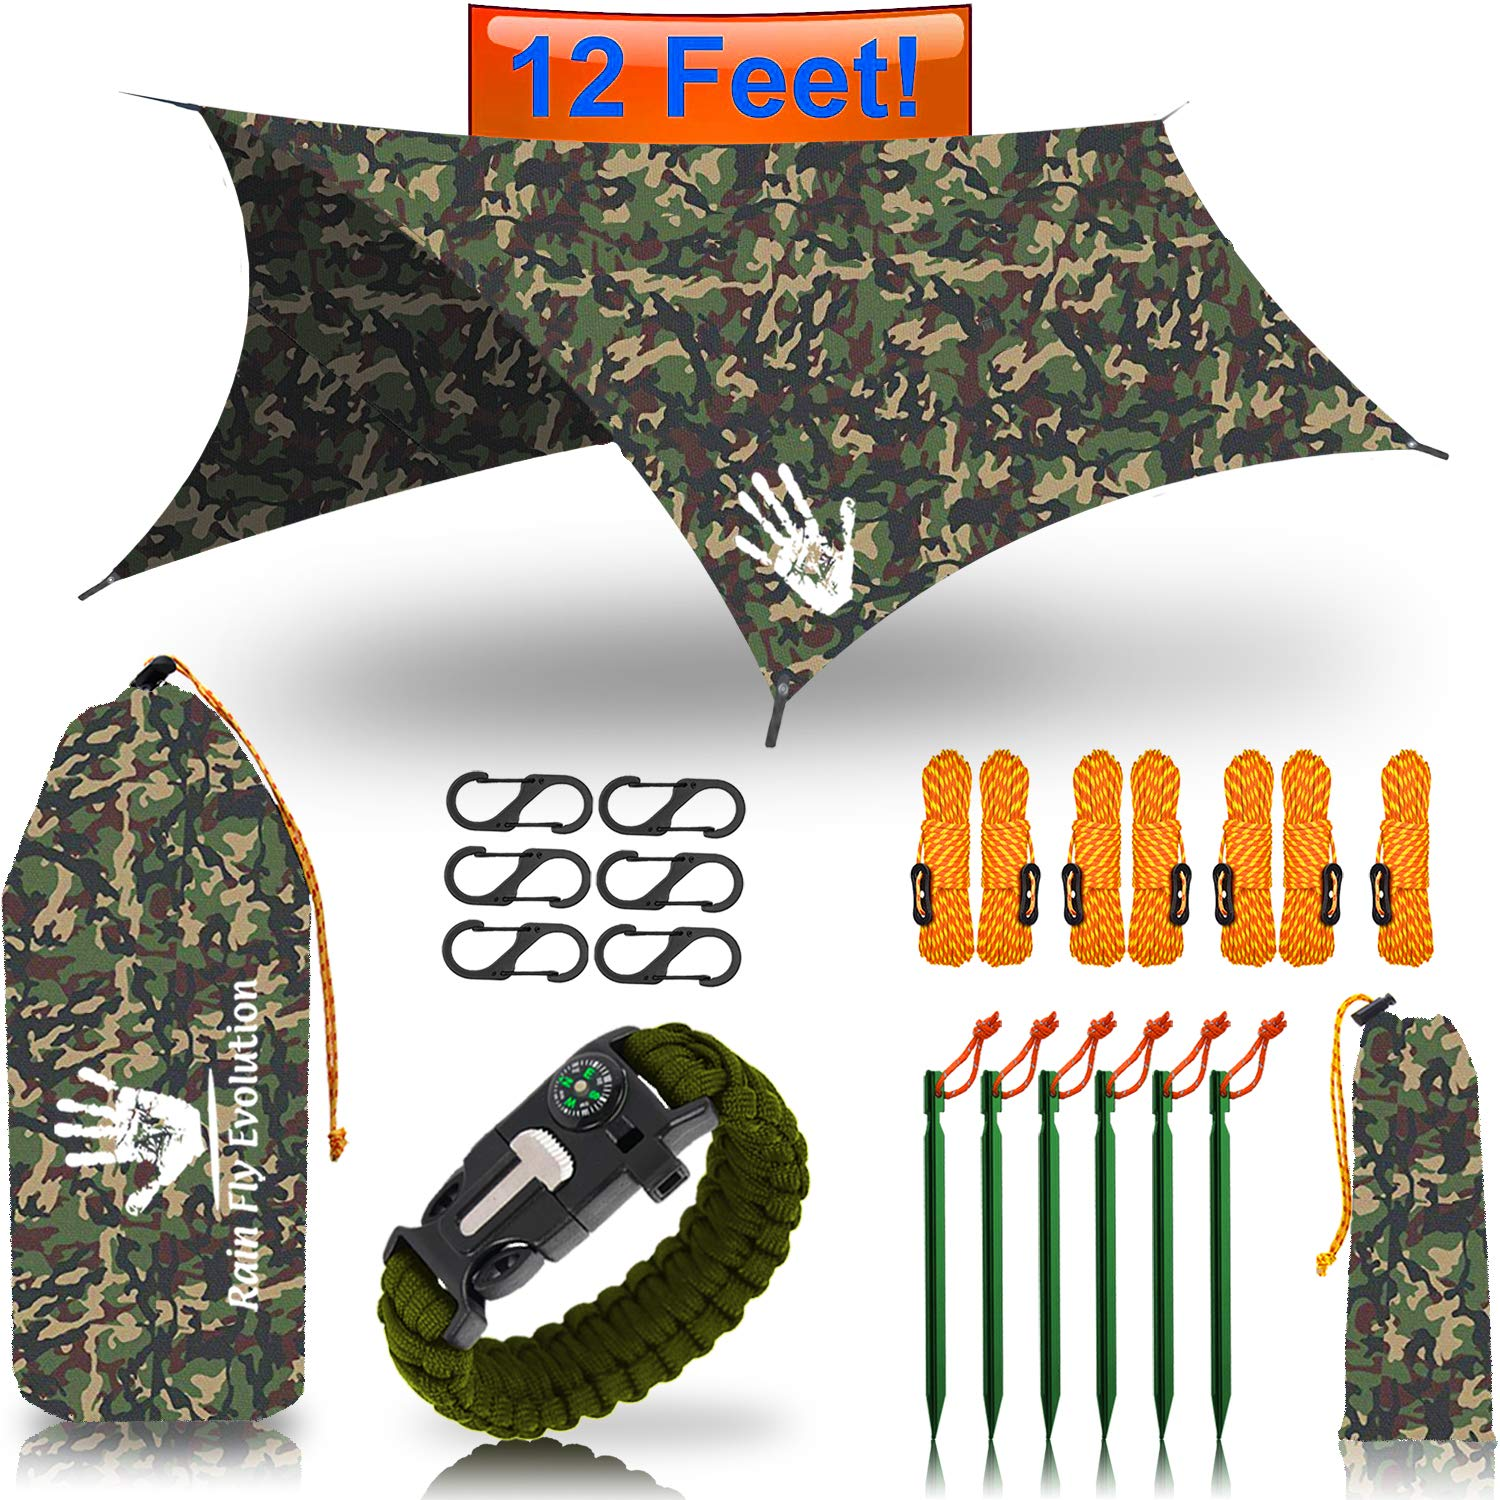 Hammock RAIN Fly Tent TARP 12x10 or 10x10 ft & Survival Bracelet Gear - Waterproof Eno Rain Cover - Lightweight Diamond Ripstop Nylon - Multiple Colors (Discounted CAMO 12x10 - Green Bracelet) by Rain Fly EVOLUTION